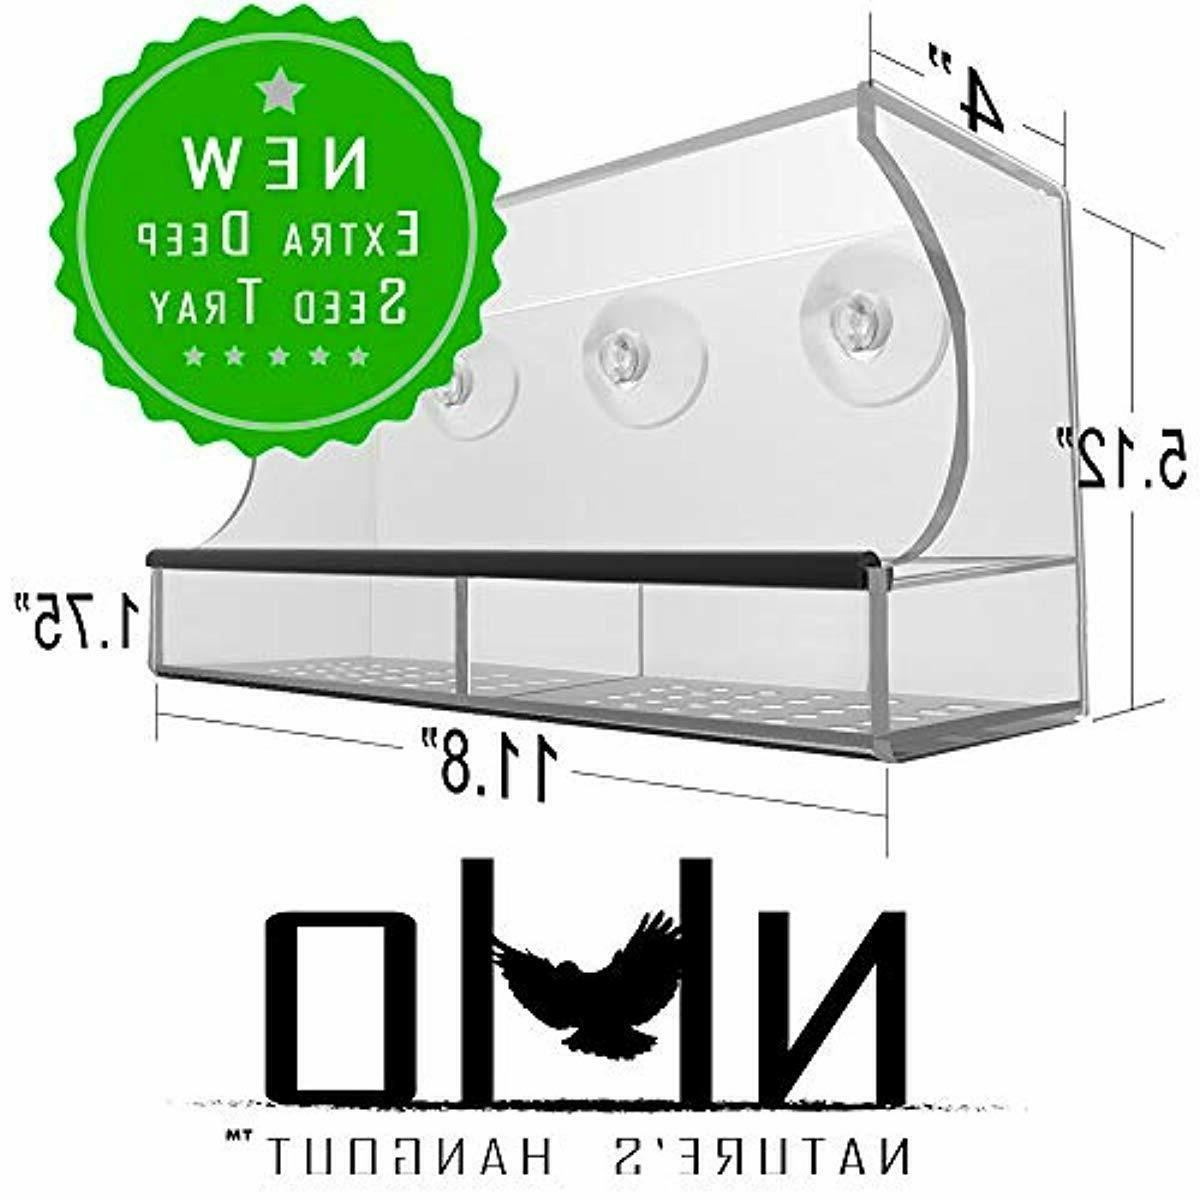 window bird feeder with strong suction cups